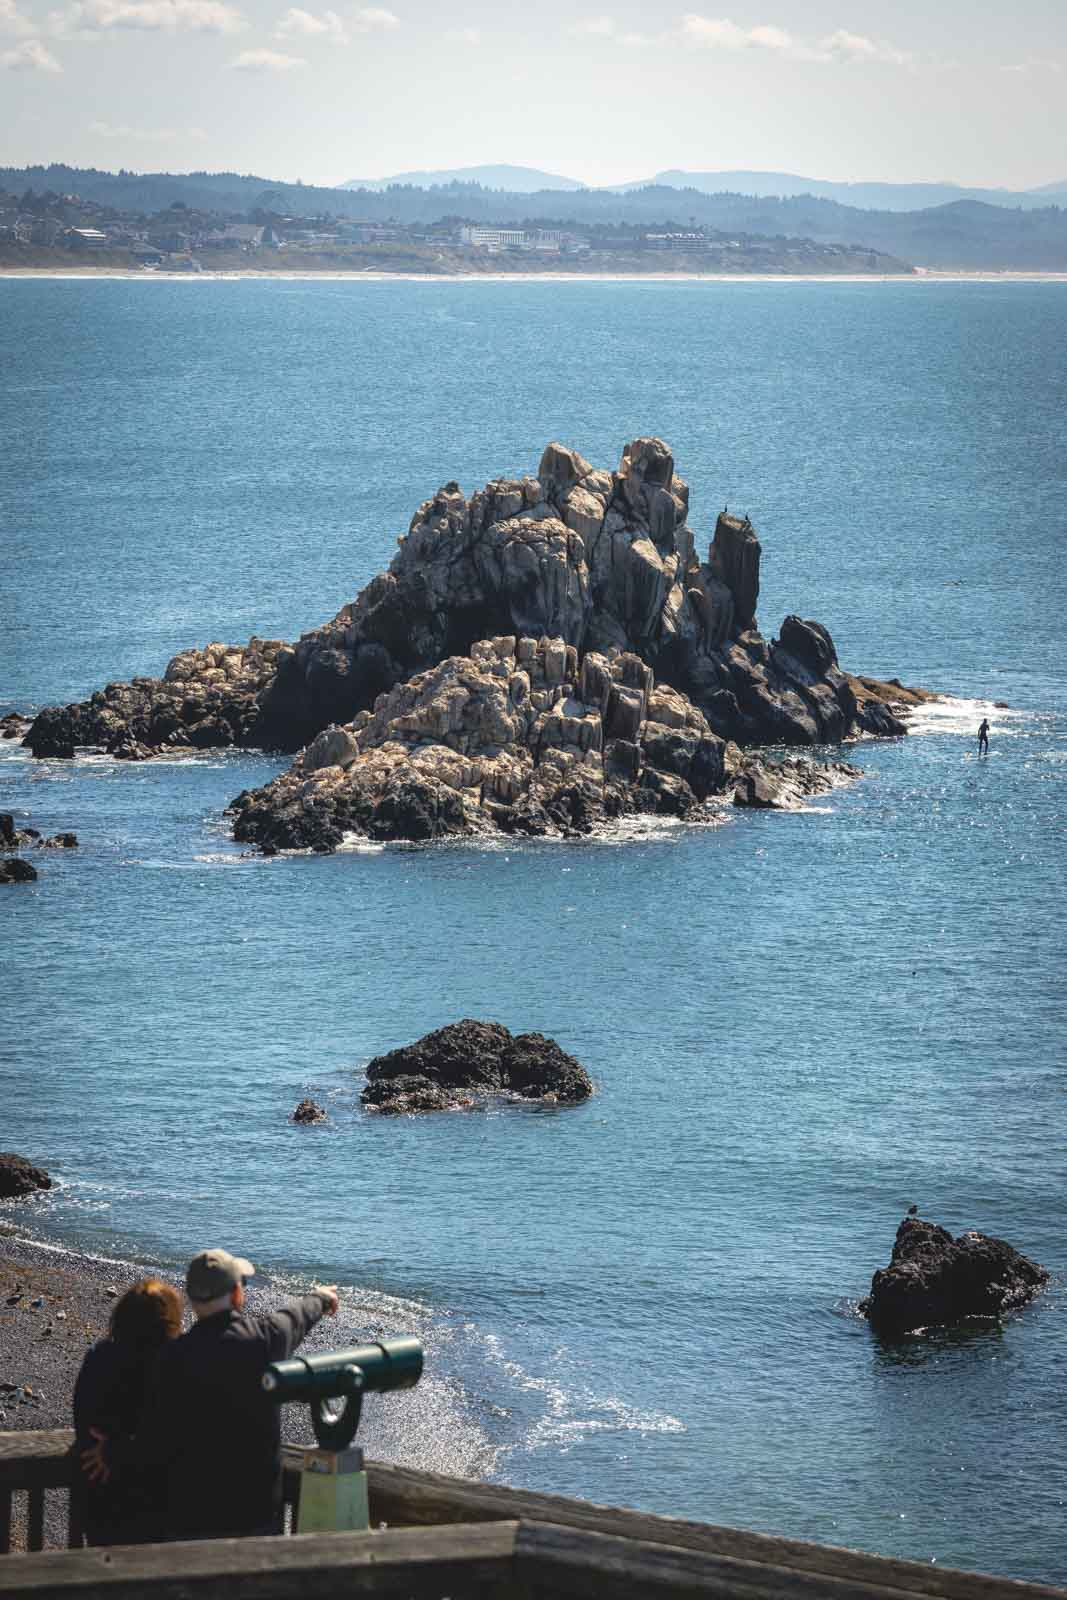 View of ocean with rocky islands in Yaquina Bay, one of the Oregon Coast State Parks